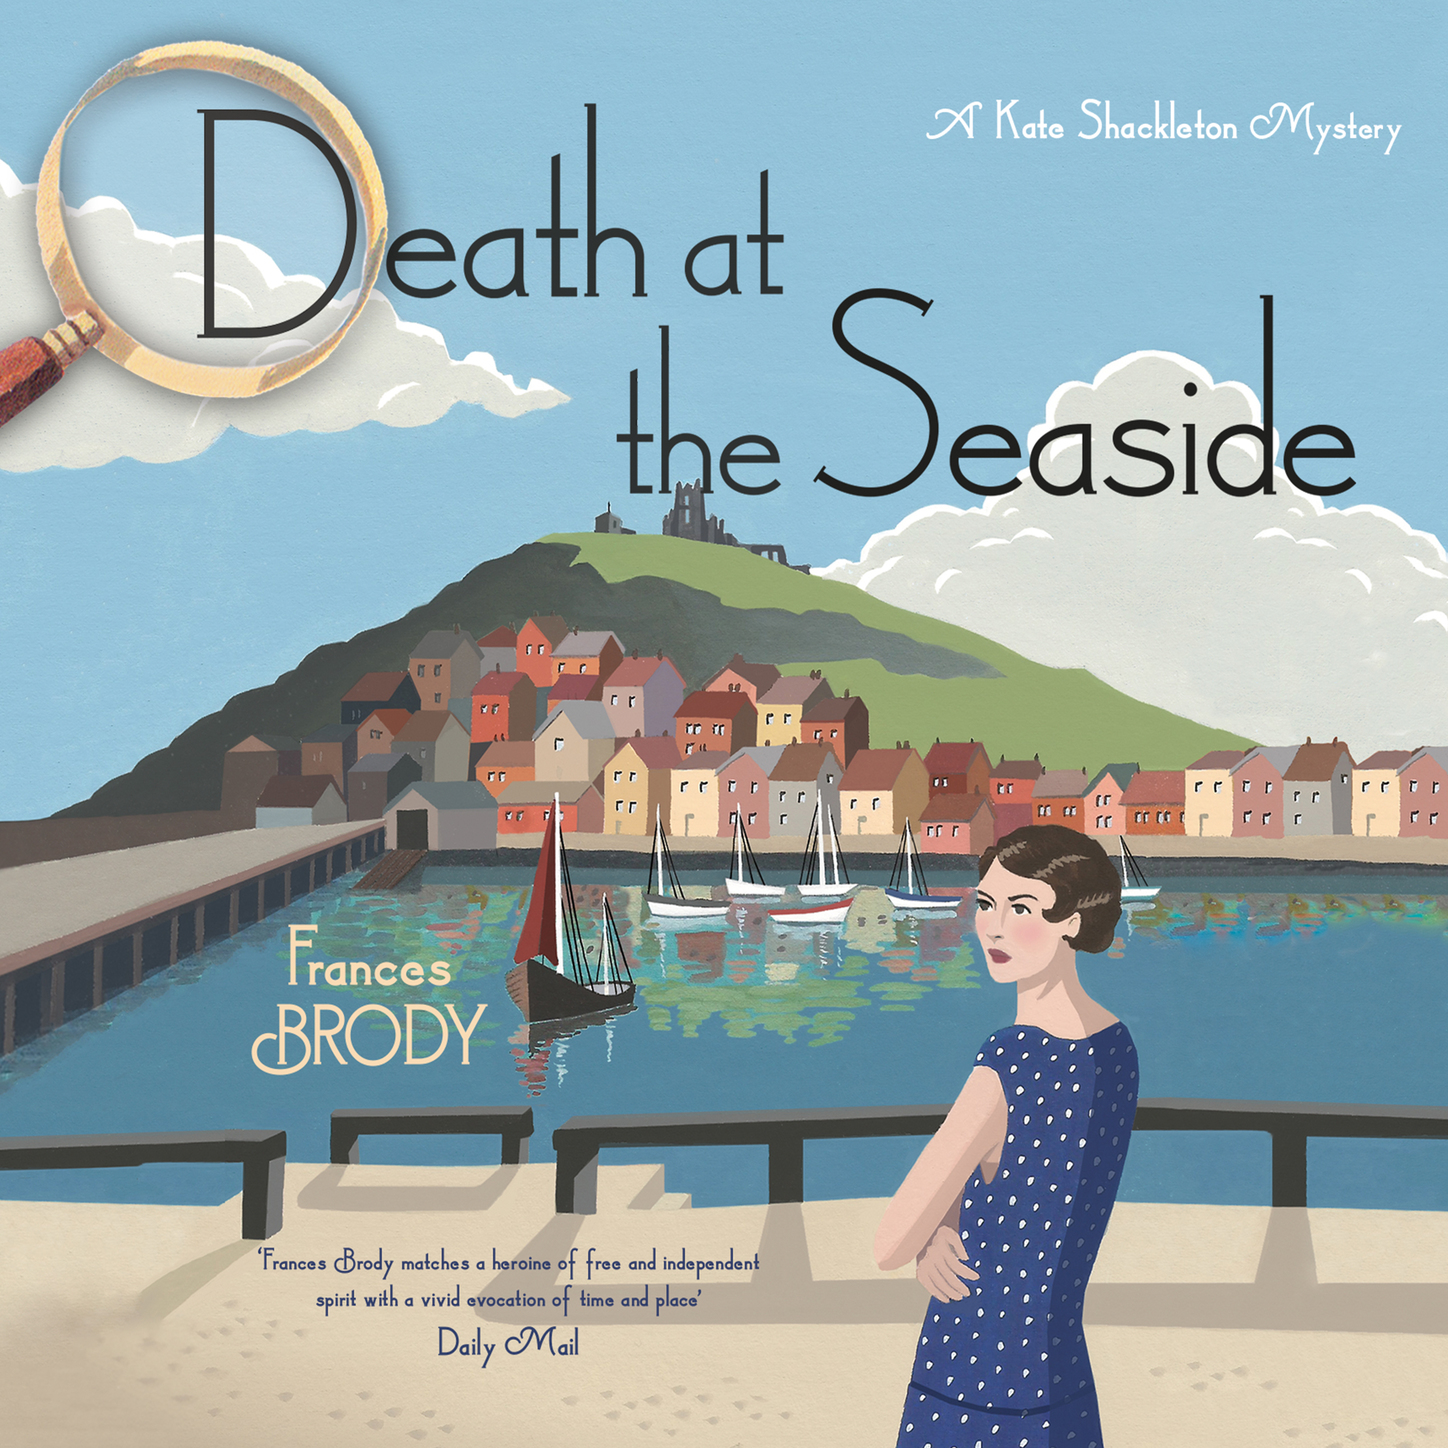 Frances Brody Death at the Seaside - Kate Shackleton Mystery, Book 8 (Unabridged) jennifer brody the united continuums the continuum trilogy book 3 unabridged